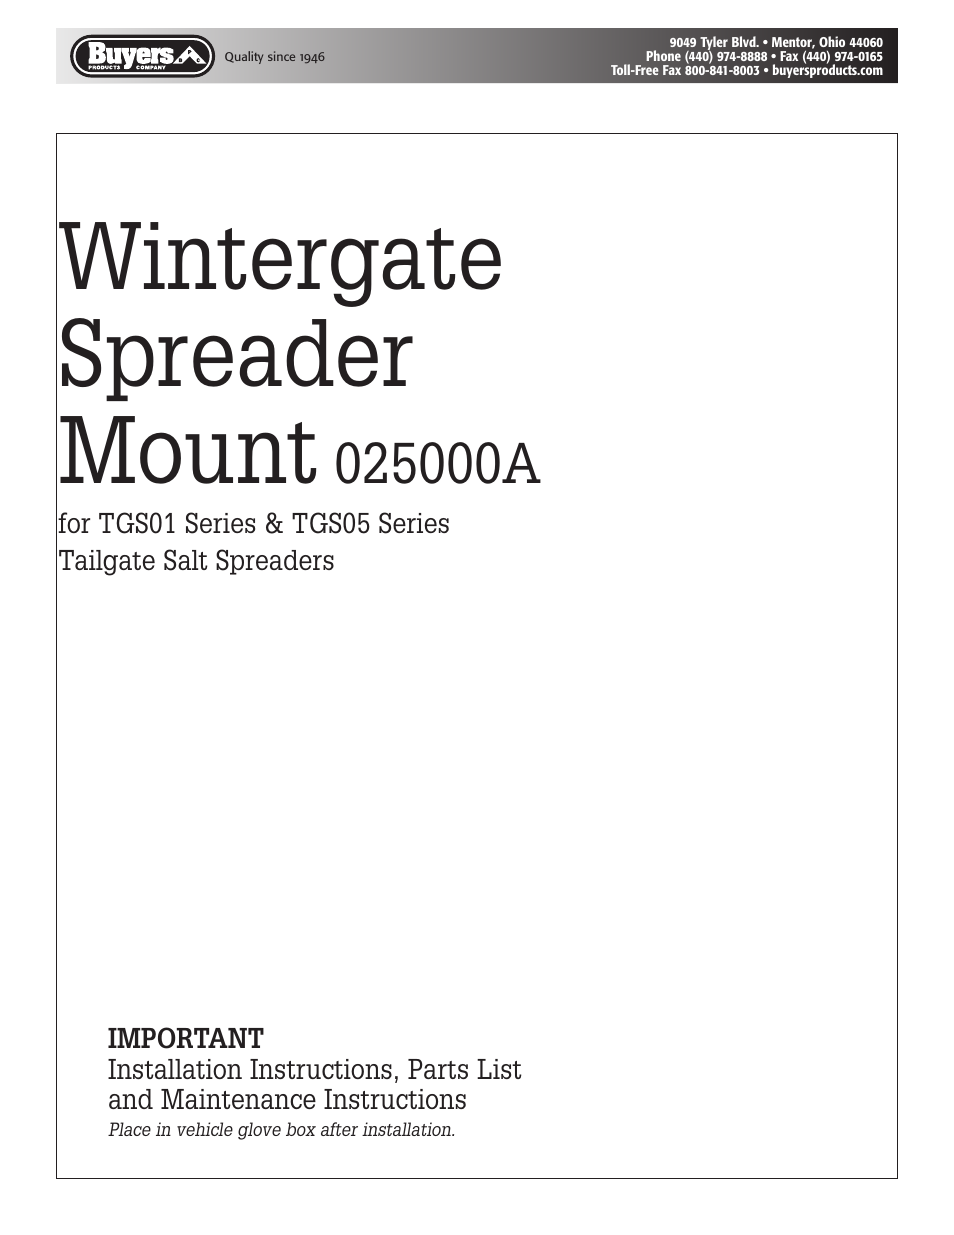 Saltdogg 025000a Wintergate Spreader Mount For Tgs01 Series Tgs05 Tailgate Salt Wiring Diagram User Manual 4 Pages